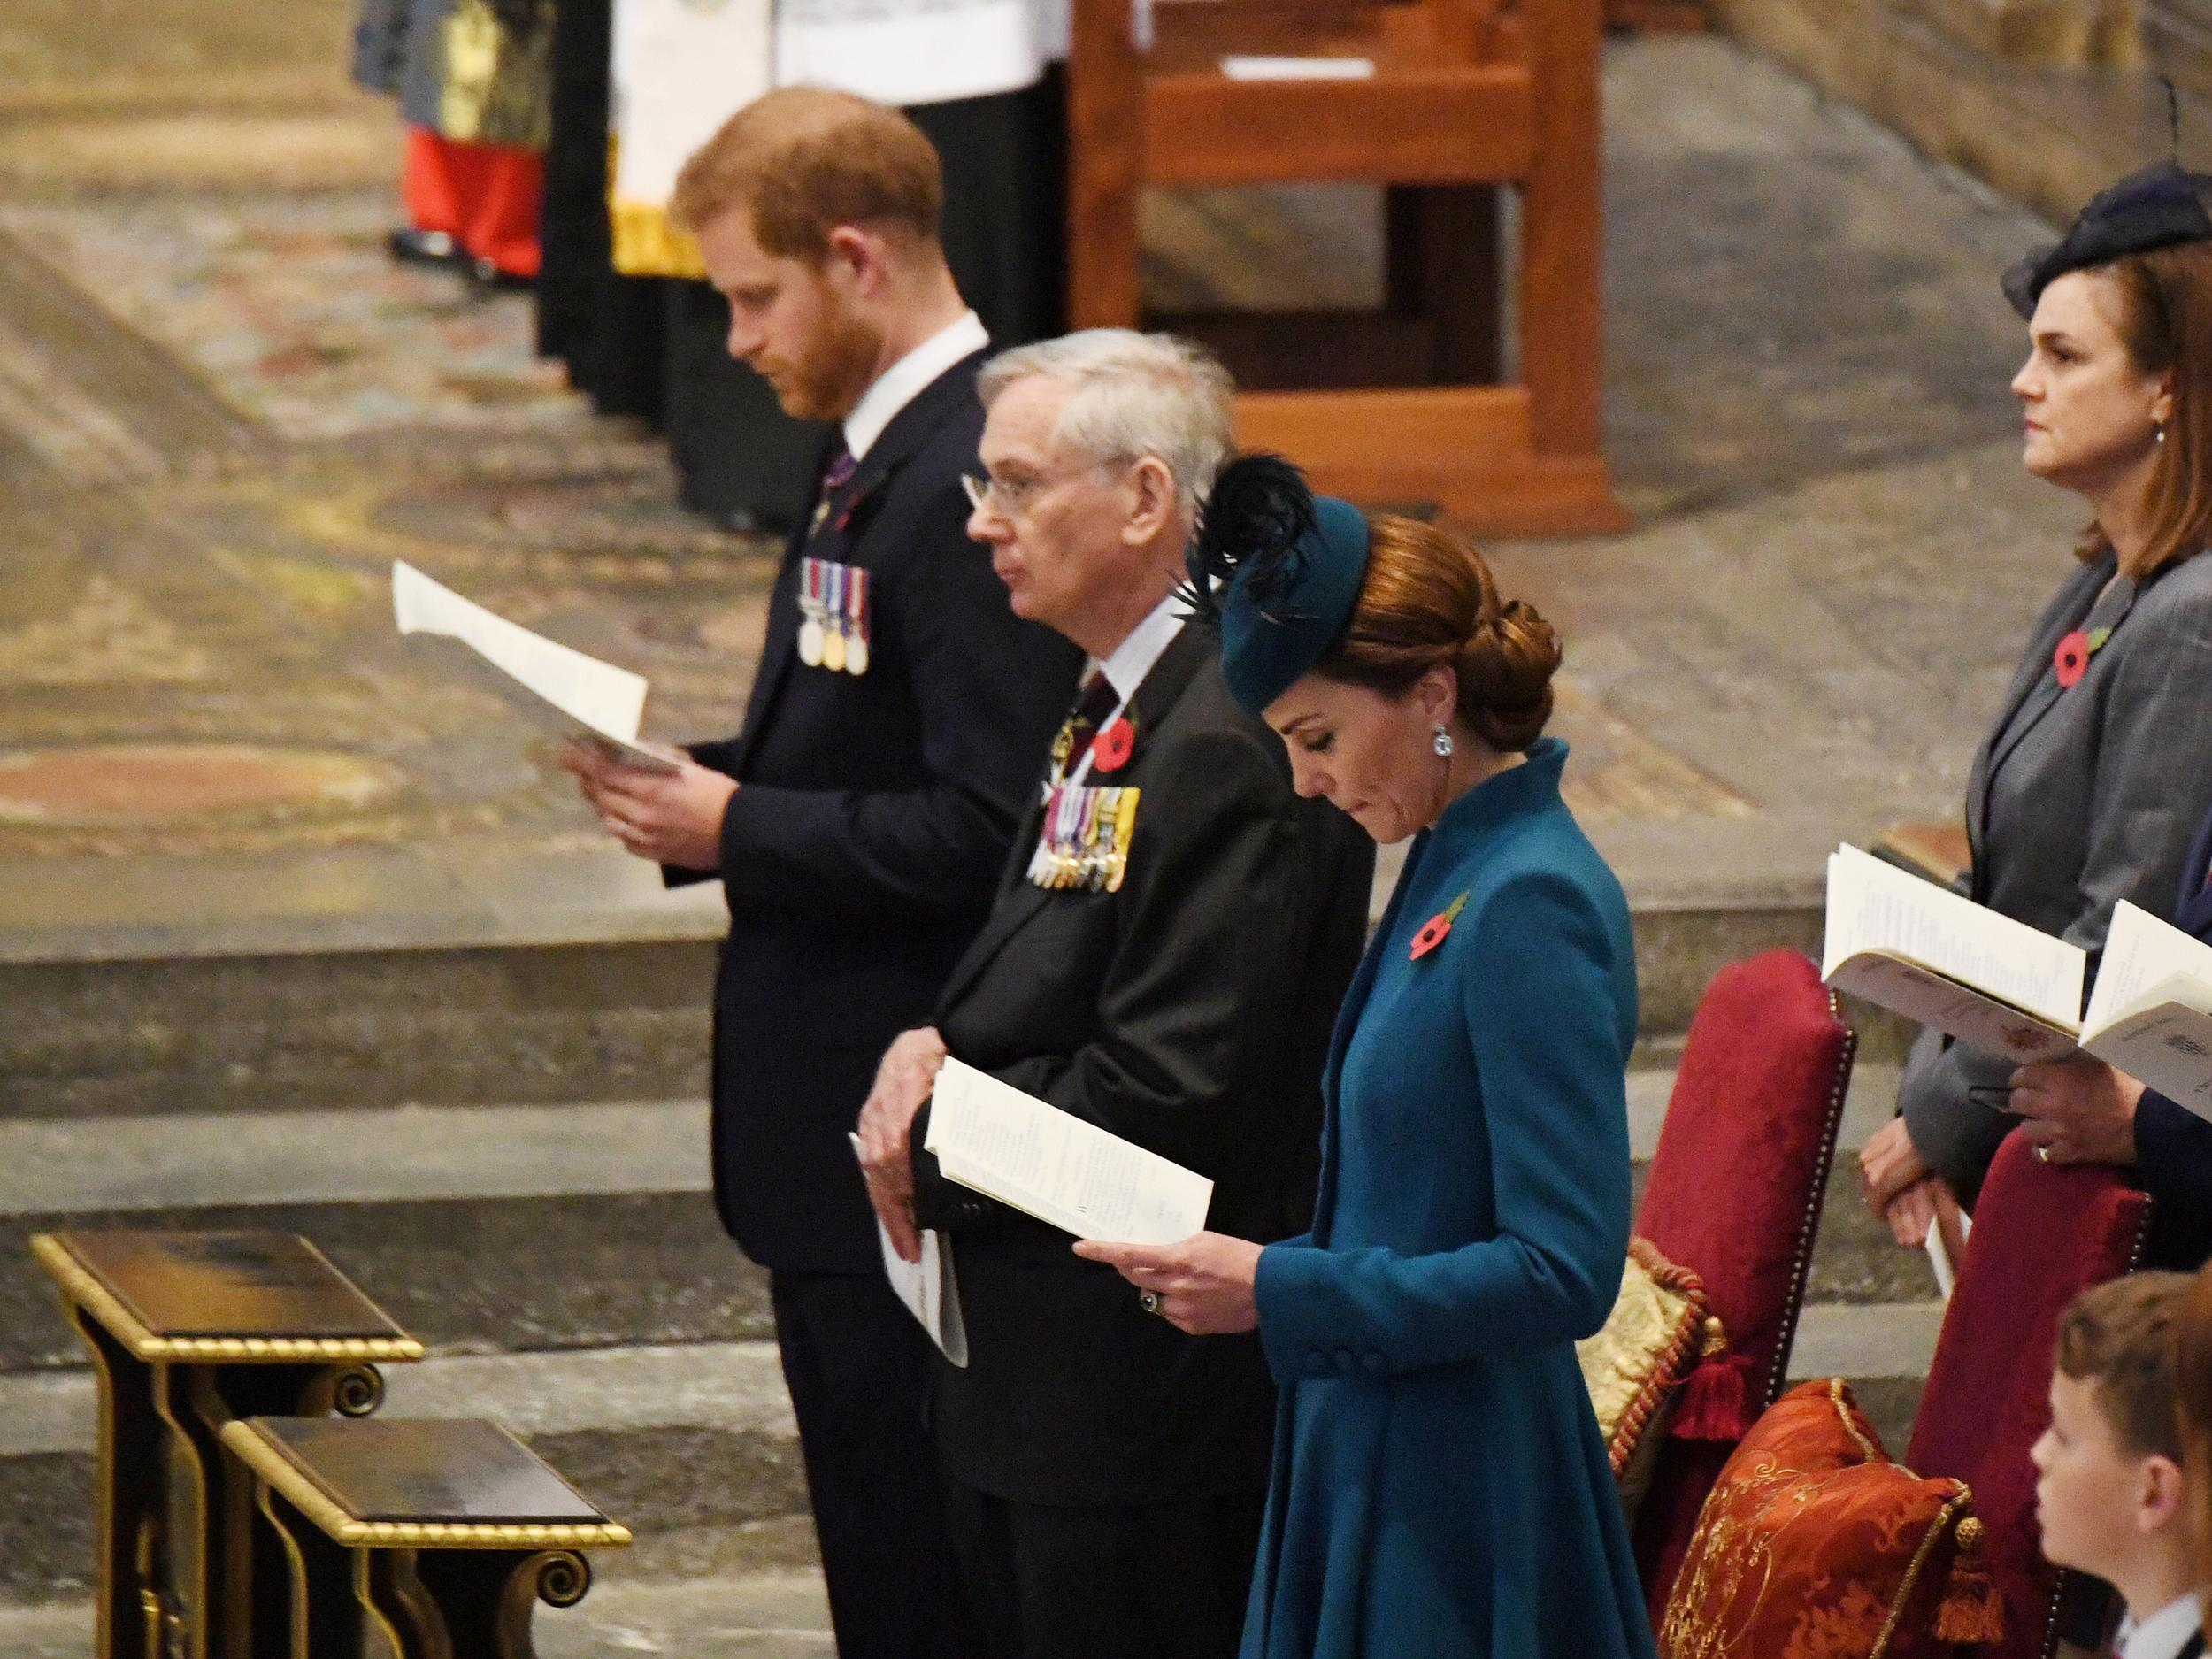 LONDON, ENGLAND - APRIL 25:  Prince Harry, Duke of Sussex, Prince Richard, Duke of Gloucester and Catherine, Duchess of Cambridge attend the ANZAC Day Service of Commemoration and Thanksgiving at Westminster Abbey on April 25, 2019 in London, United Kingdom.  (Photo by Jeremy Selwyn-WPA Pool/Getty Images)